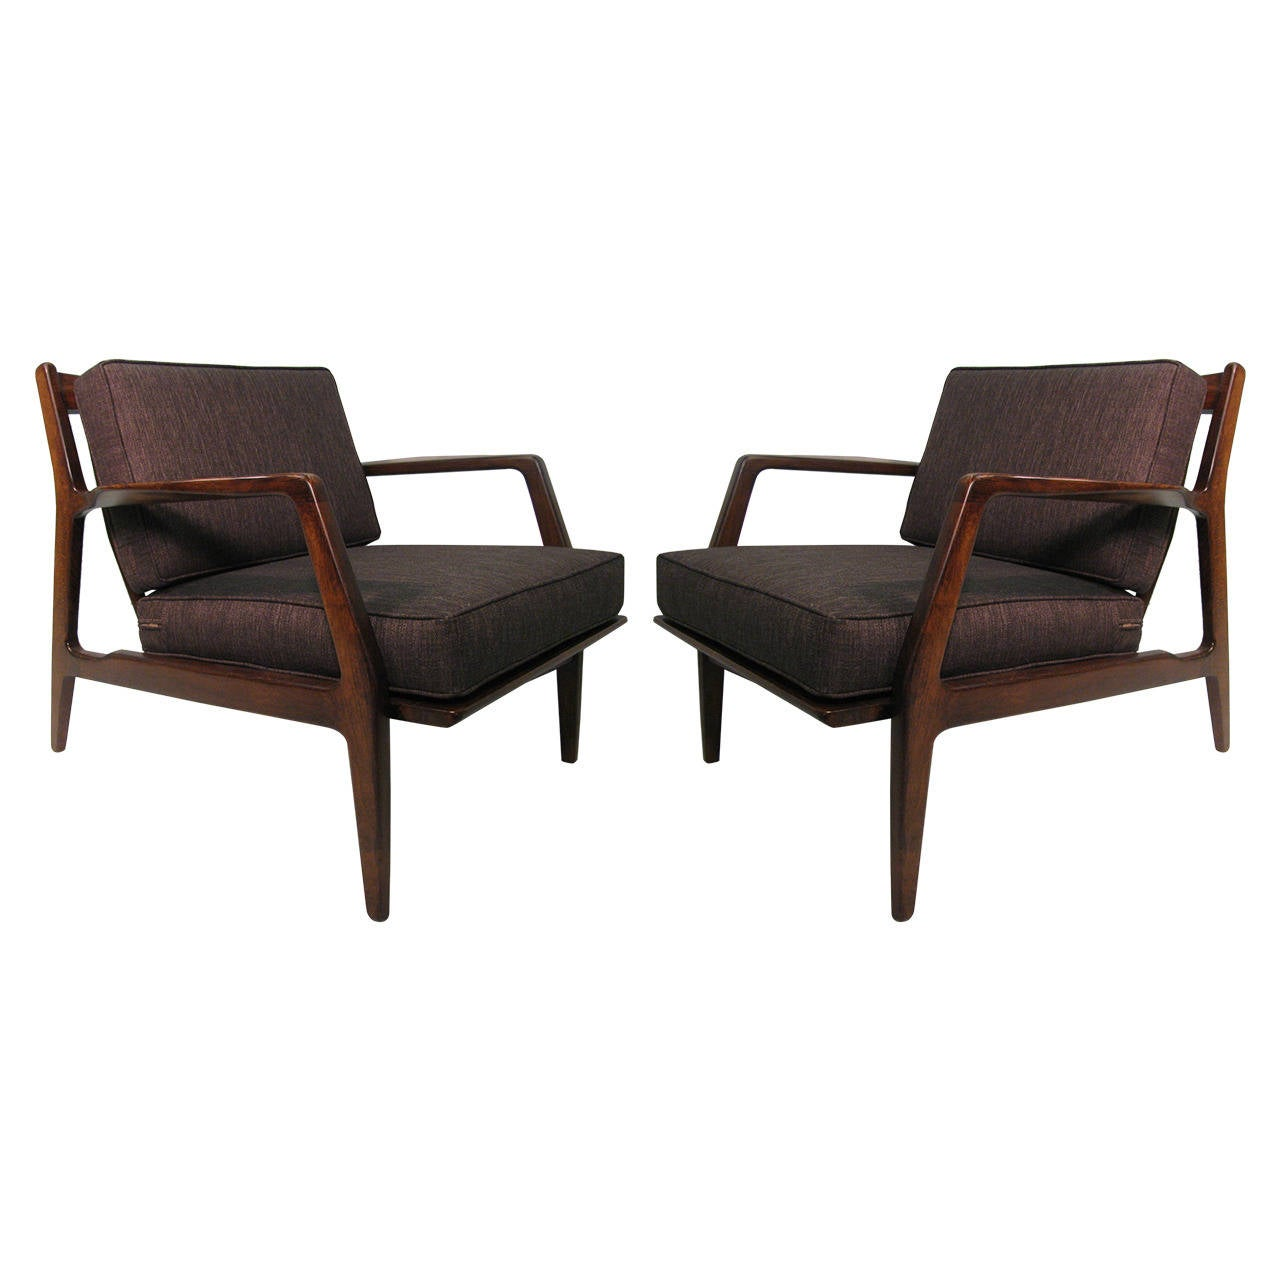 This sculptural pair of lounge chairs by ib kofod larsen is no longer - Pair Of Danish Modern Lounge Chairs By Ib Kofod Larsen 1